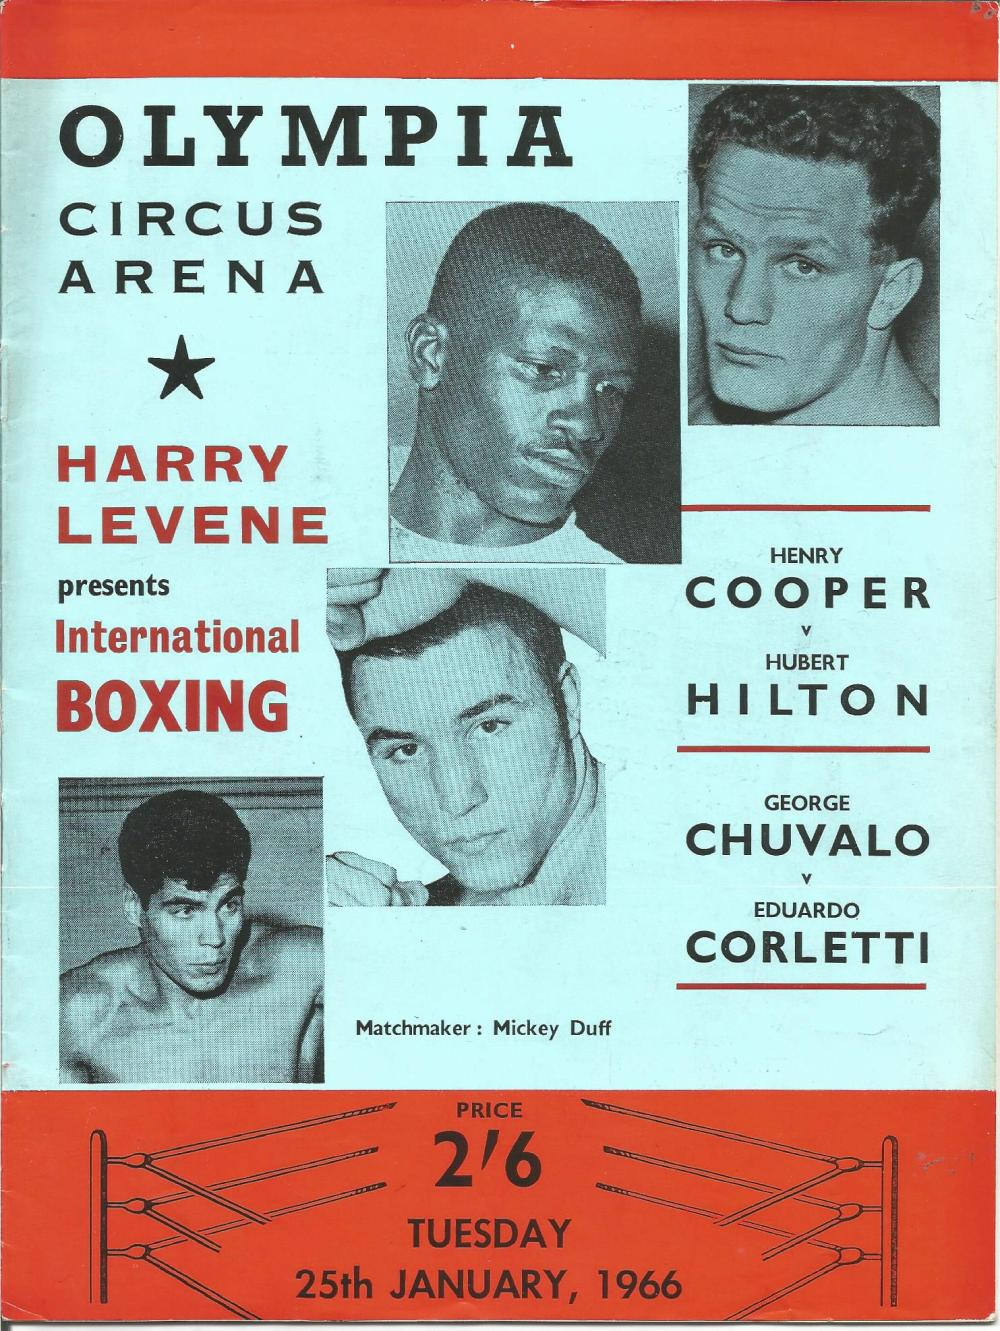 Boxing Henry Cooper v Hubert Hilton vintage fight programme Olympia Circus Arena 25th January